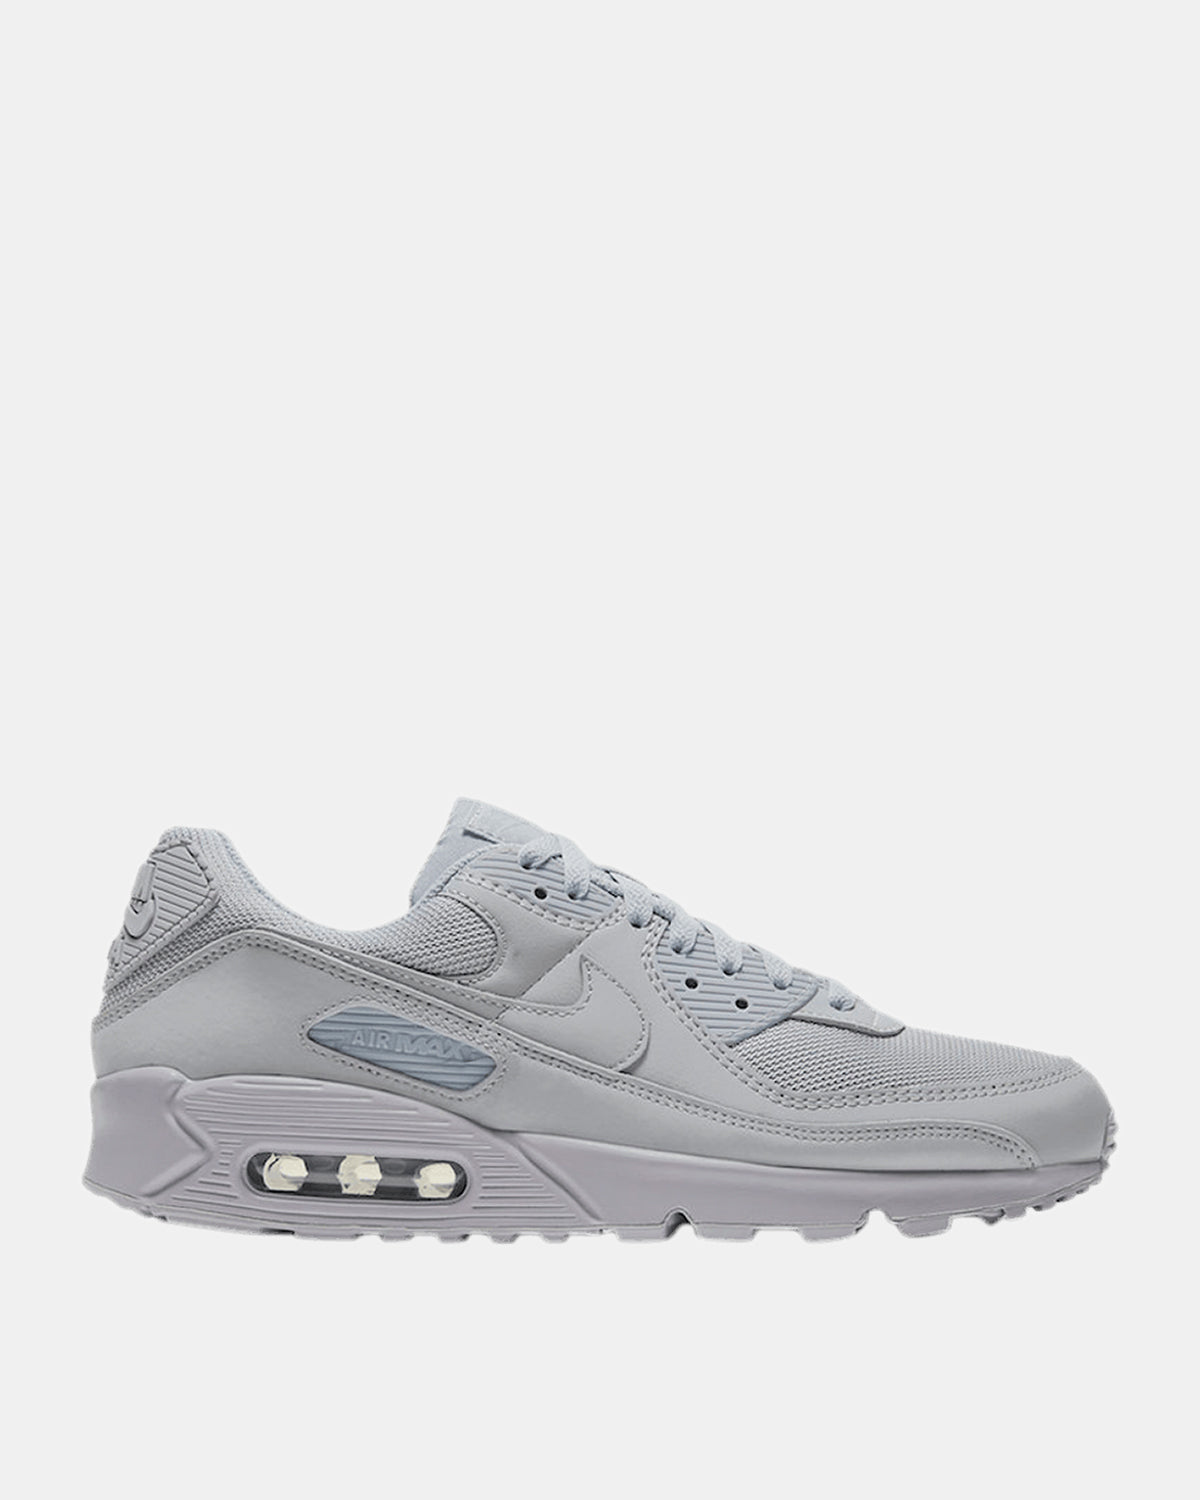 Air Max 90 (Wolf Grey | Black)